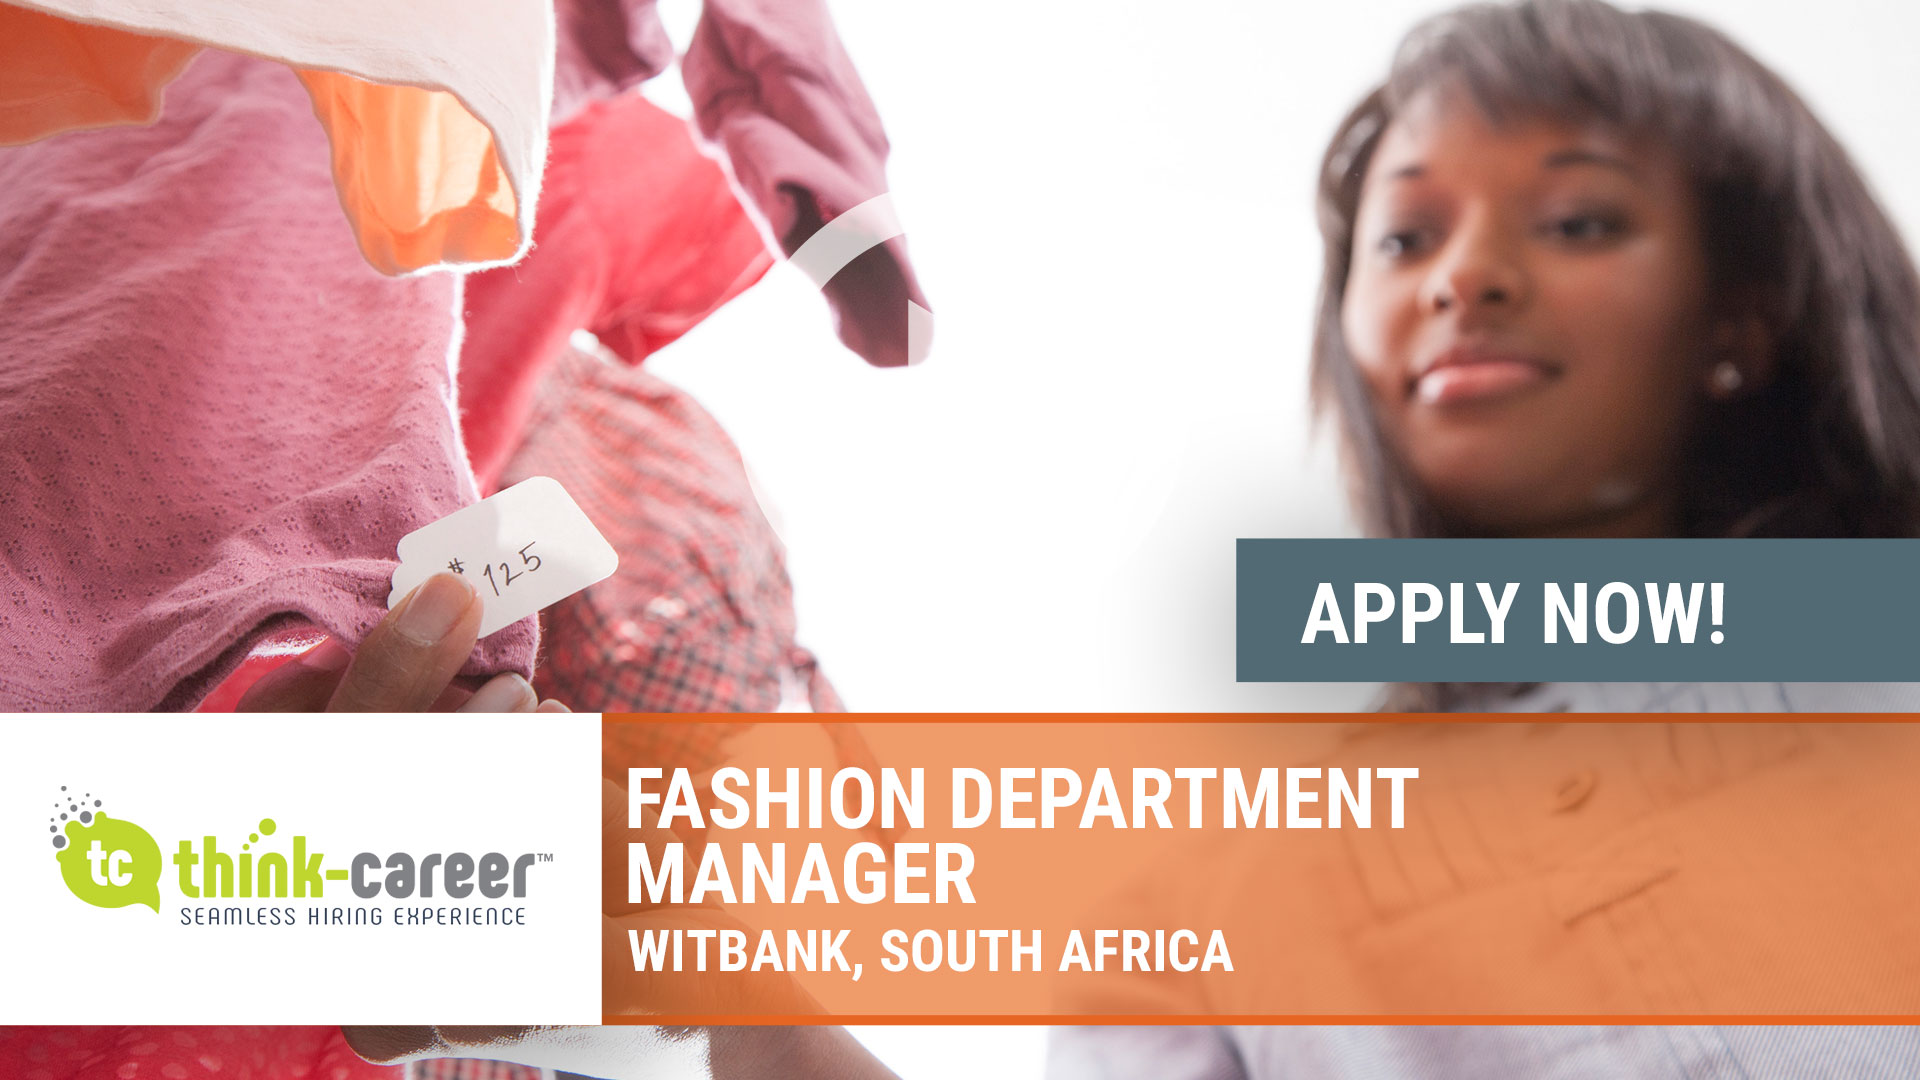 Watch our careers video for available job opening Fashion Department Manager in Witbank, South Africa